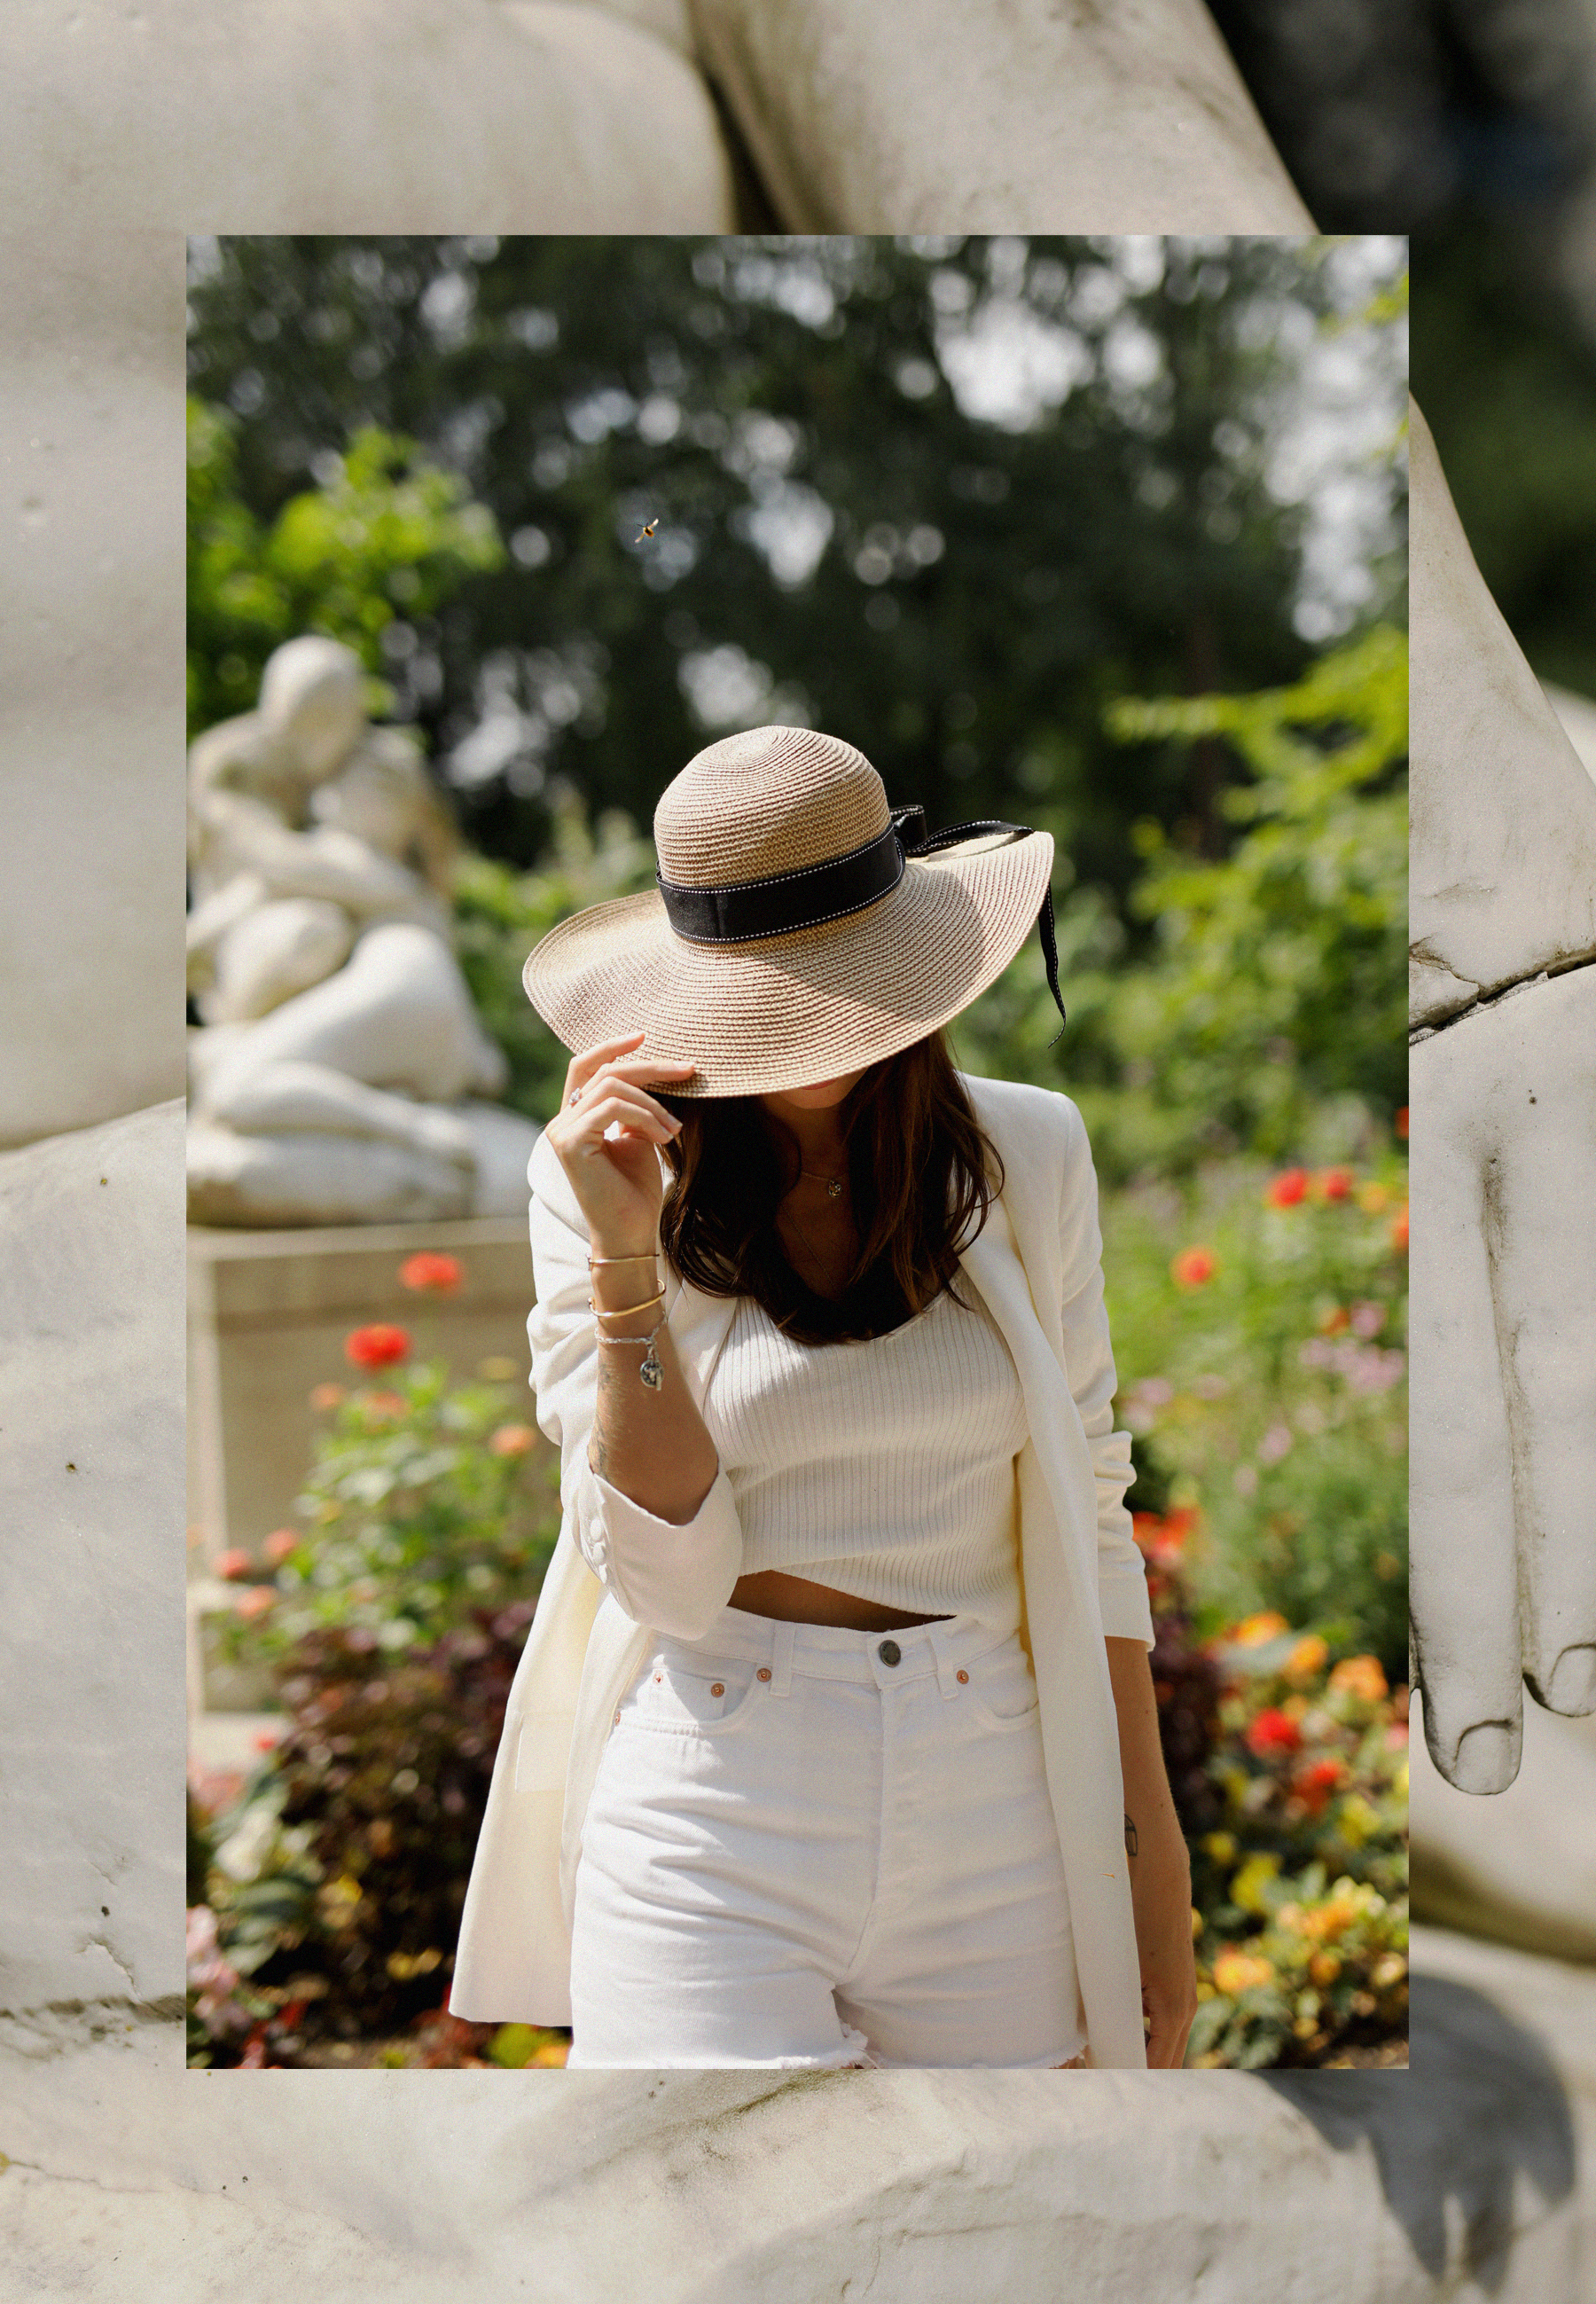 all white & other stories shorts blazer straw hat summer bag rouje hermes oran sandals statue marble dusseldorf düsseldorf dus art artist artsy fashionblogger modeblog jane birkin jeanne damas outfit mode inspiration look seventies ricarda schernus 4